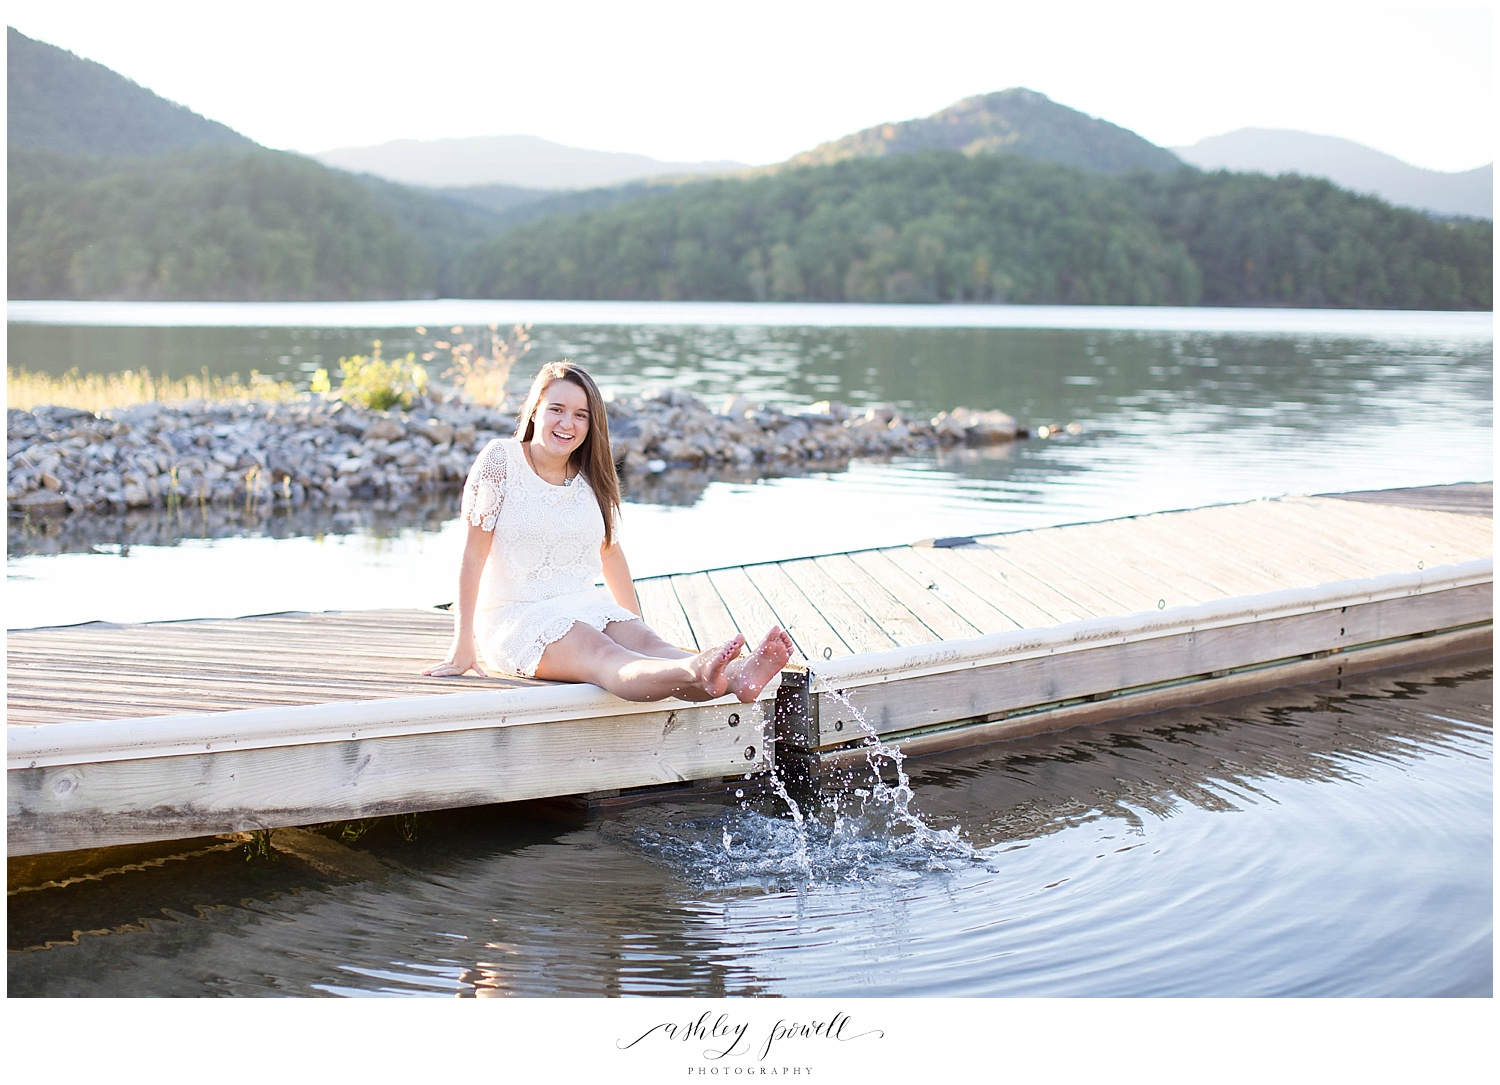 Ashley Powell Photography | Senior Portraits | Roanoke, VA